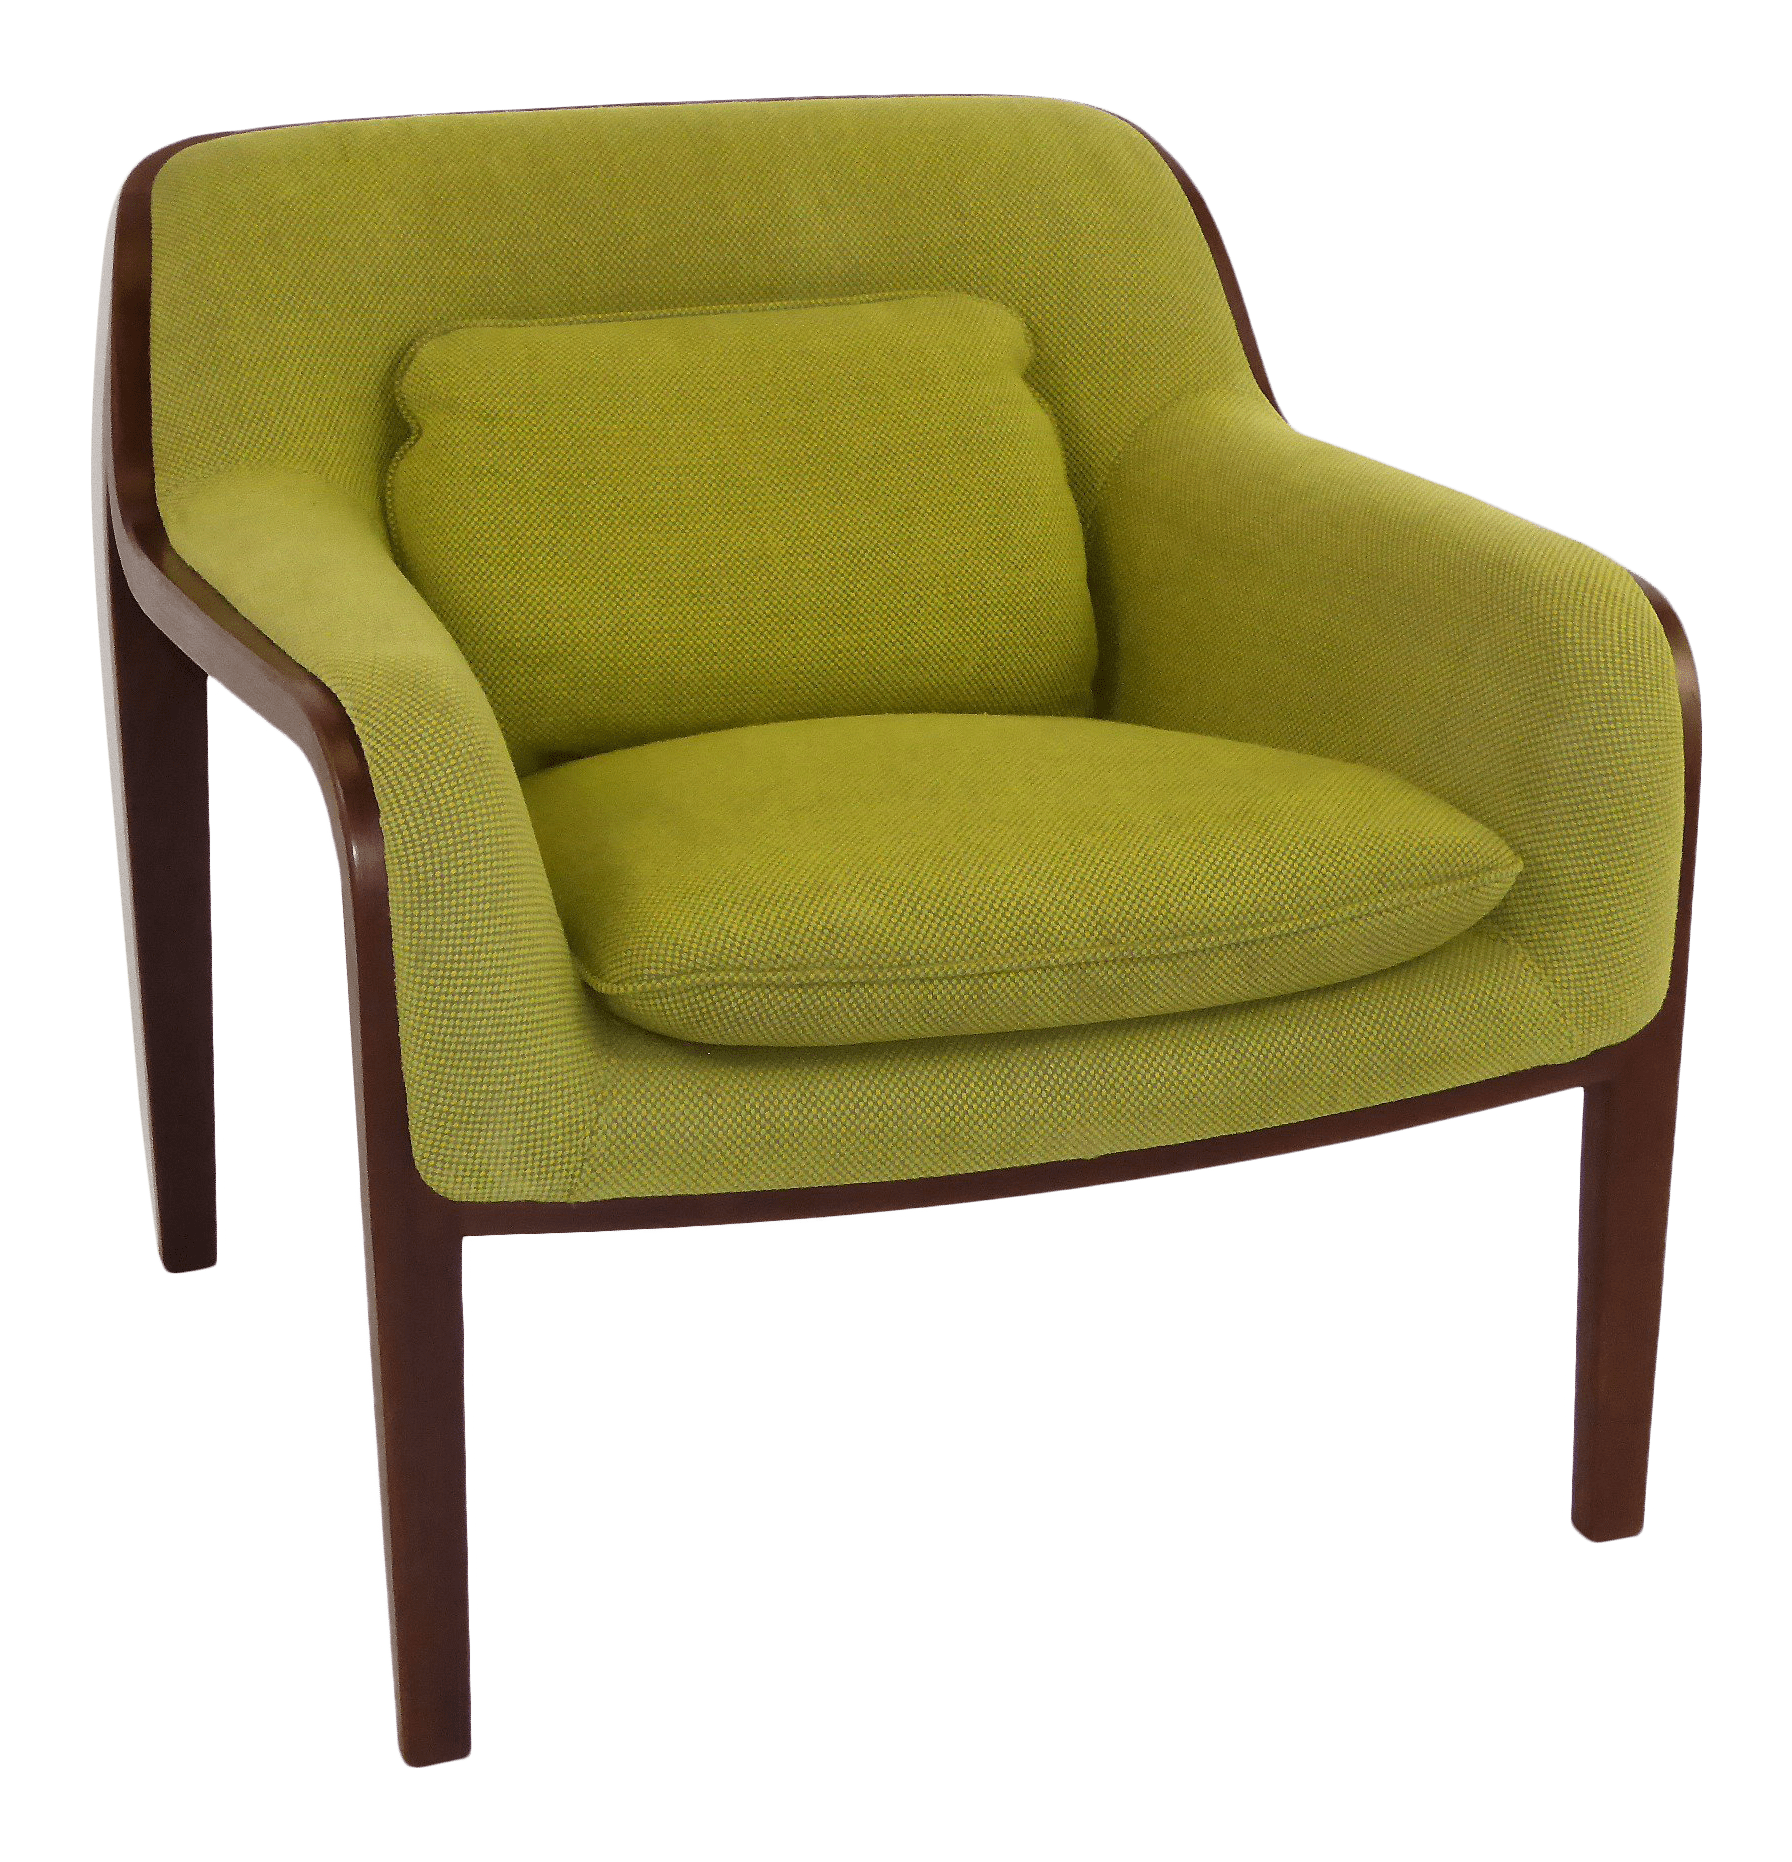 office club chairs zero gravity chair reviews antique designer for sale decaso 1970s vintage bill stephens knoll international lounge